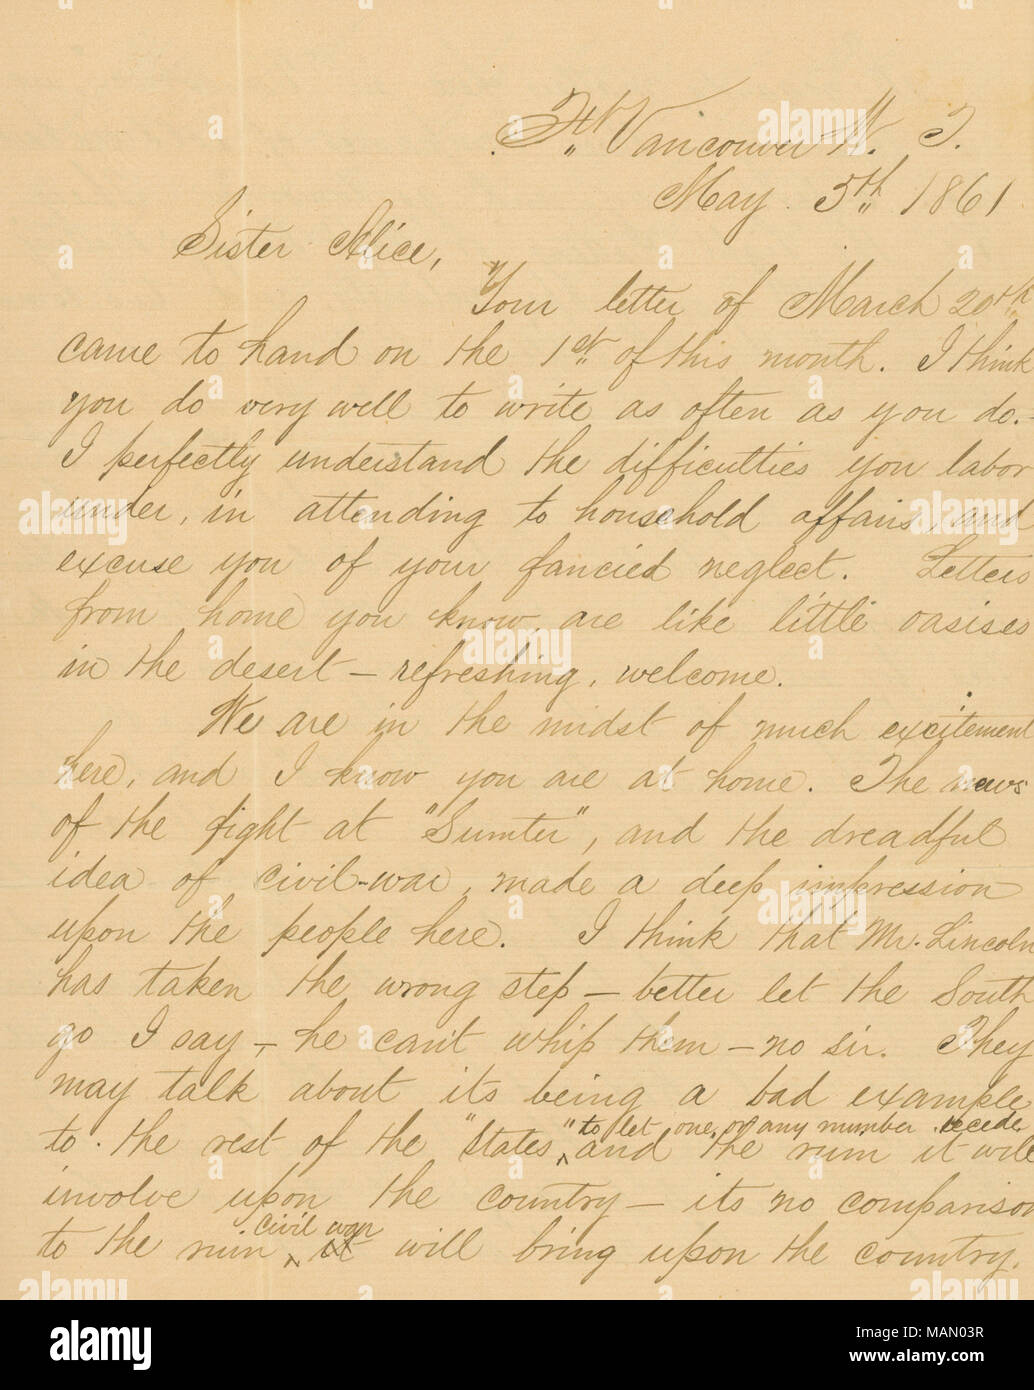 Comments on the fight at Fort Sumter and the beginning of the Civil War. Expresses his opinion that it would be better to let the South go. States, 'I feel alarmed for you all because St. Louis is likely to be the scene of much tumult and riot.' Title: Letter signed Alex [Alexander Badger], Ft. Vancouver, W.T. [Washington Territory], to his sister Alice [Alice E. Cayton], May 5, 1861  . 5 May 1861. Badger, Alexander, 1840-1917 - Stock Image